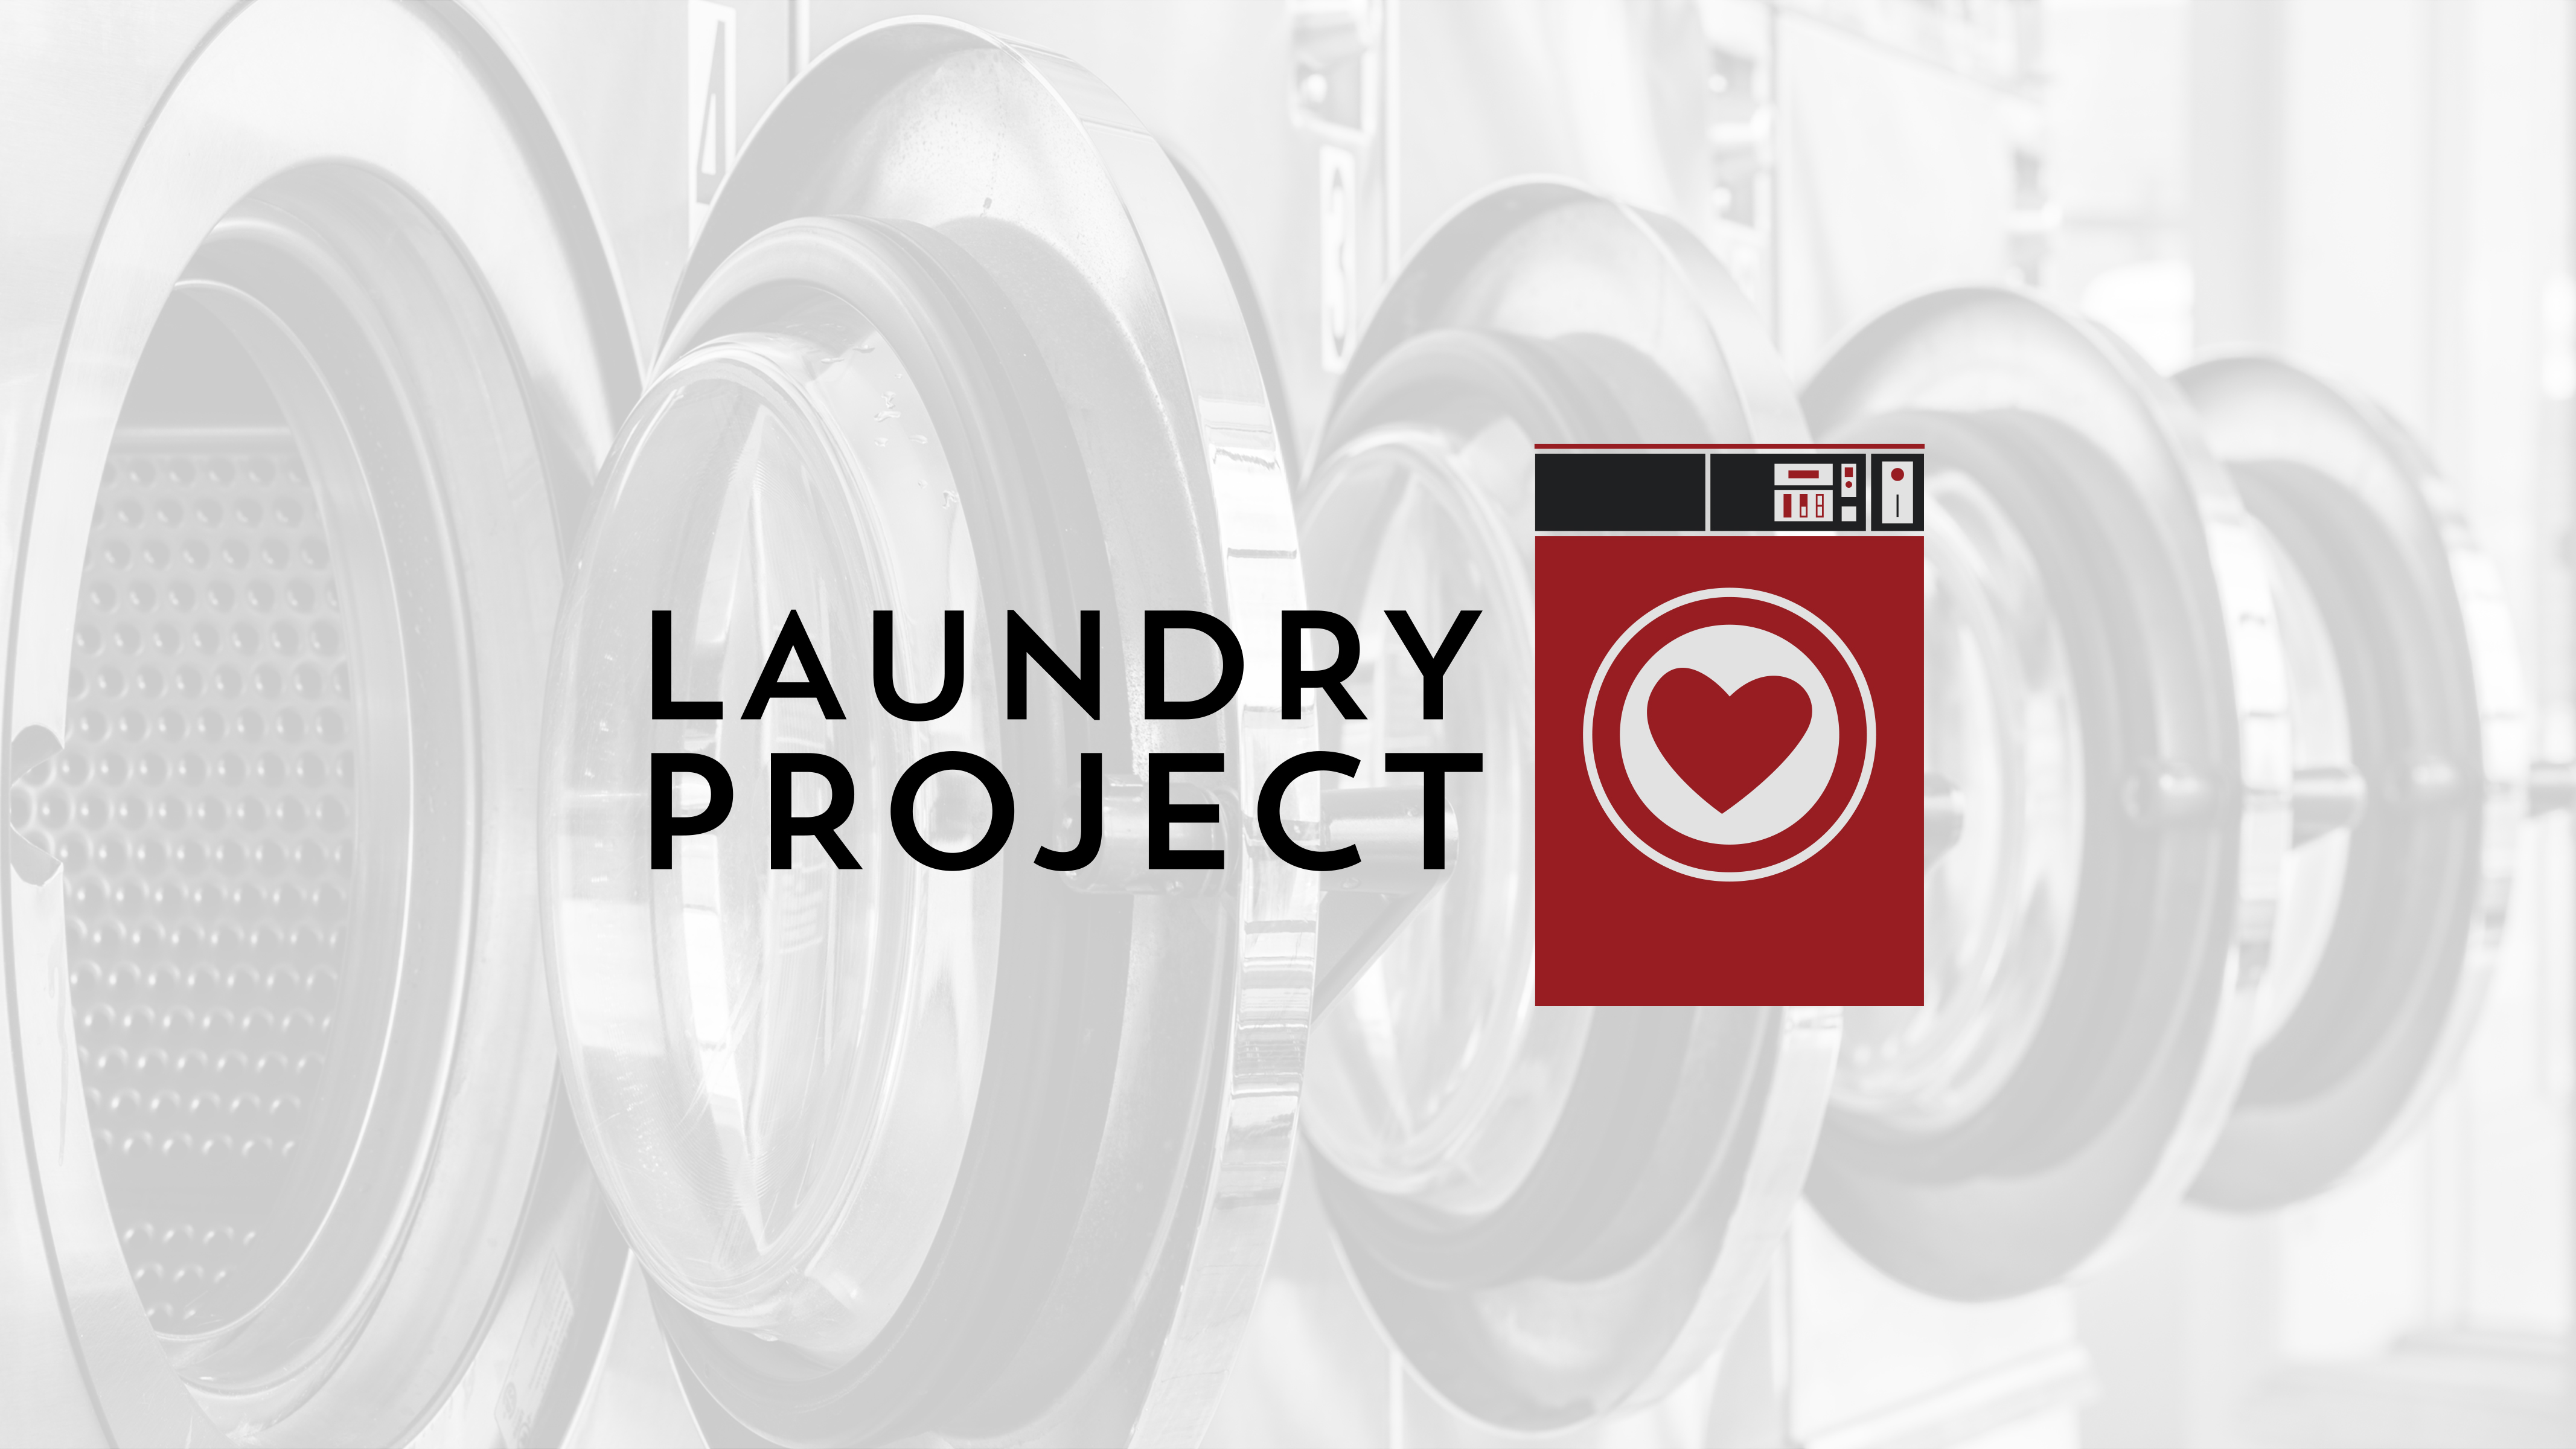 Welcome to the Laundry Project by Current Initiatives